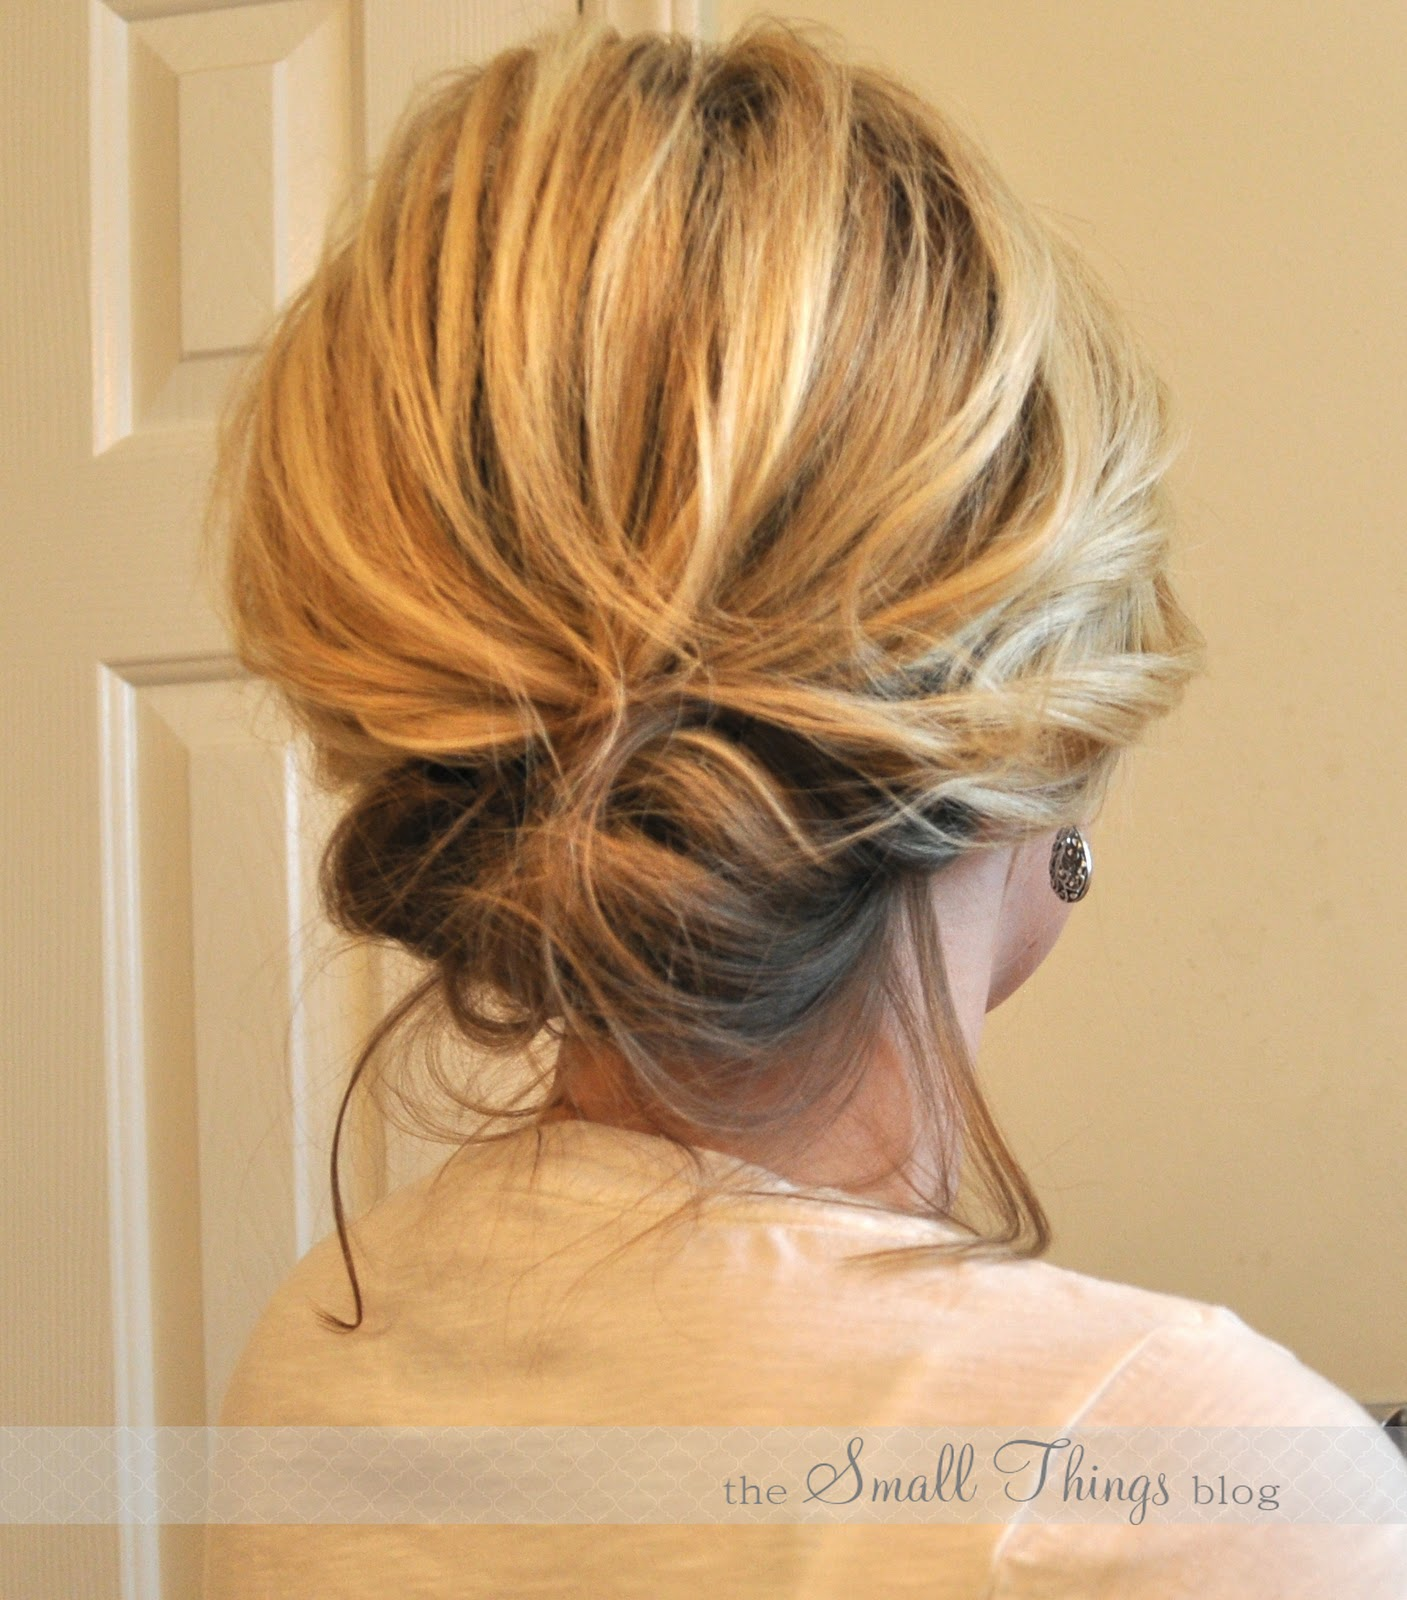 The Chic Updo The Small Things Blog